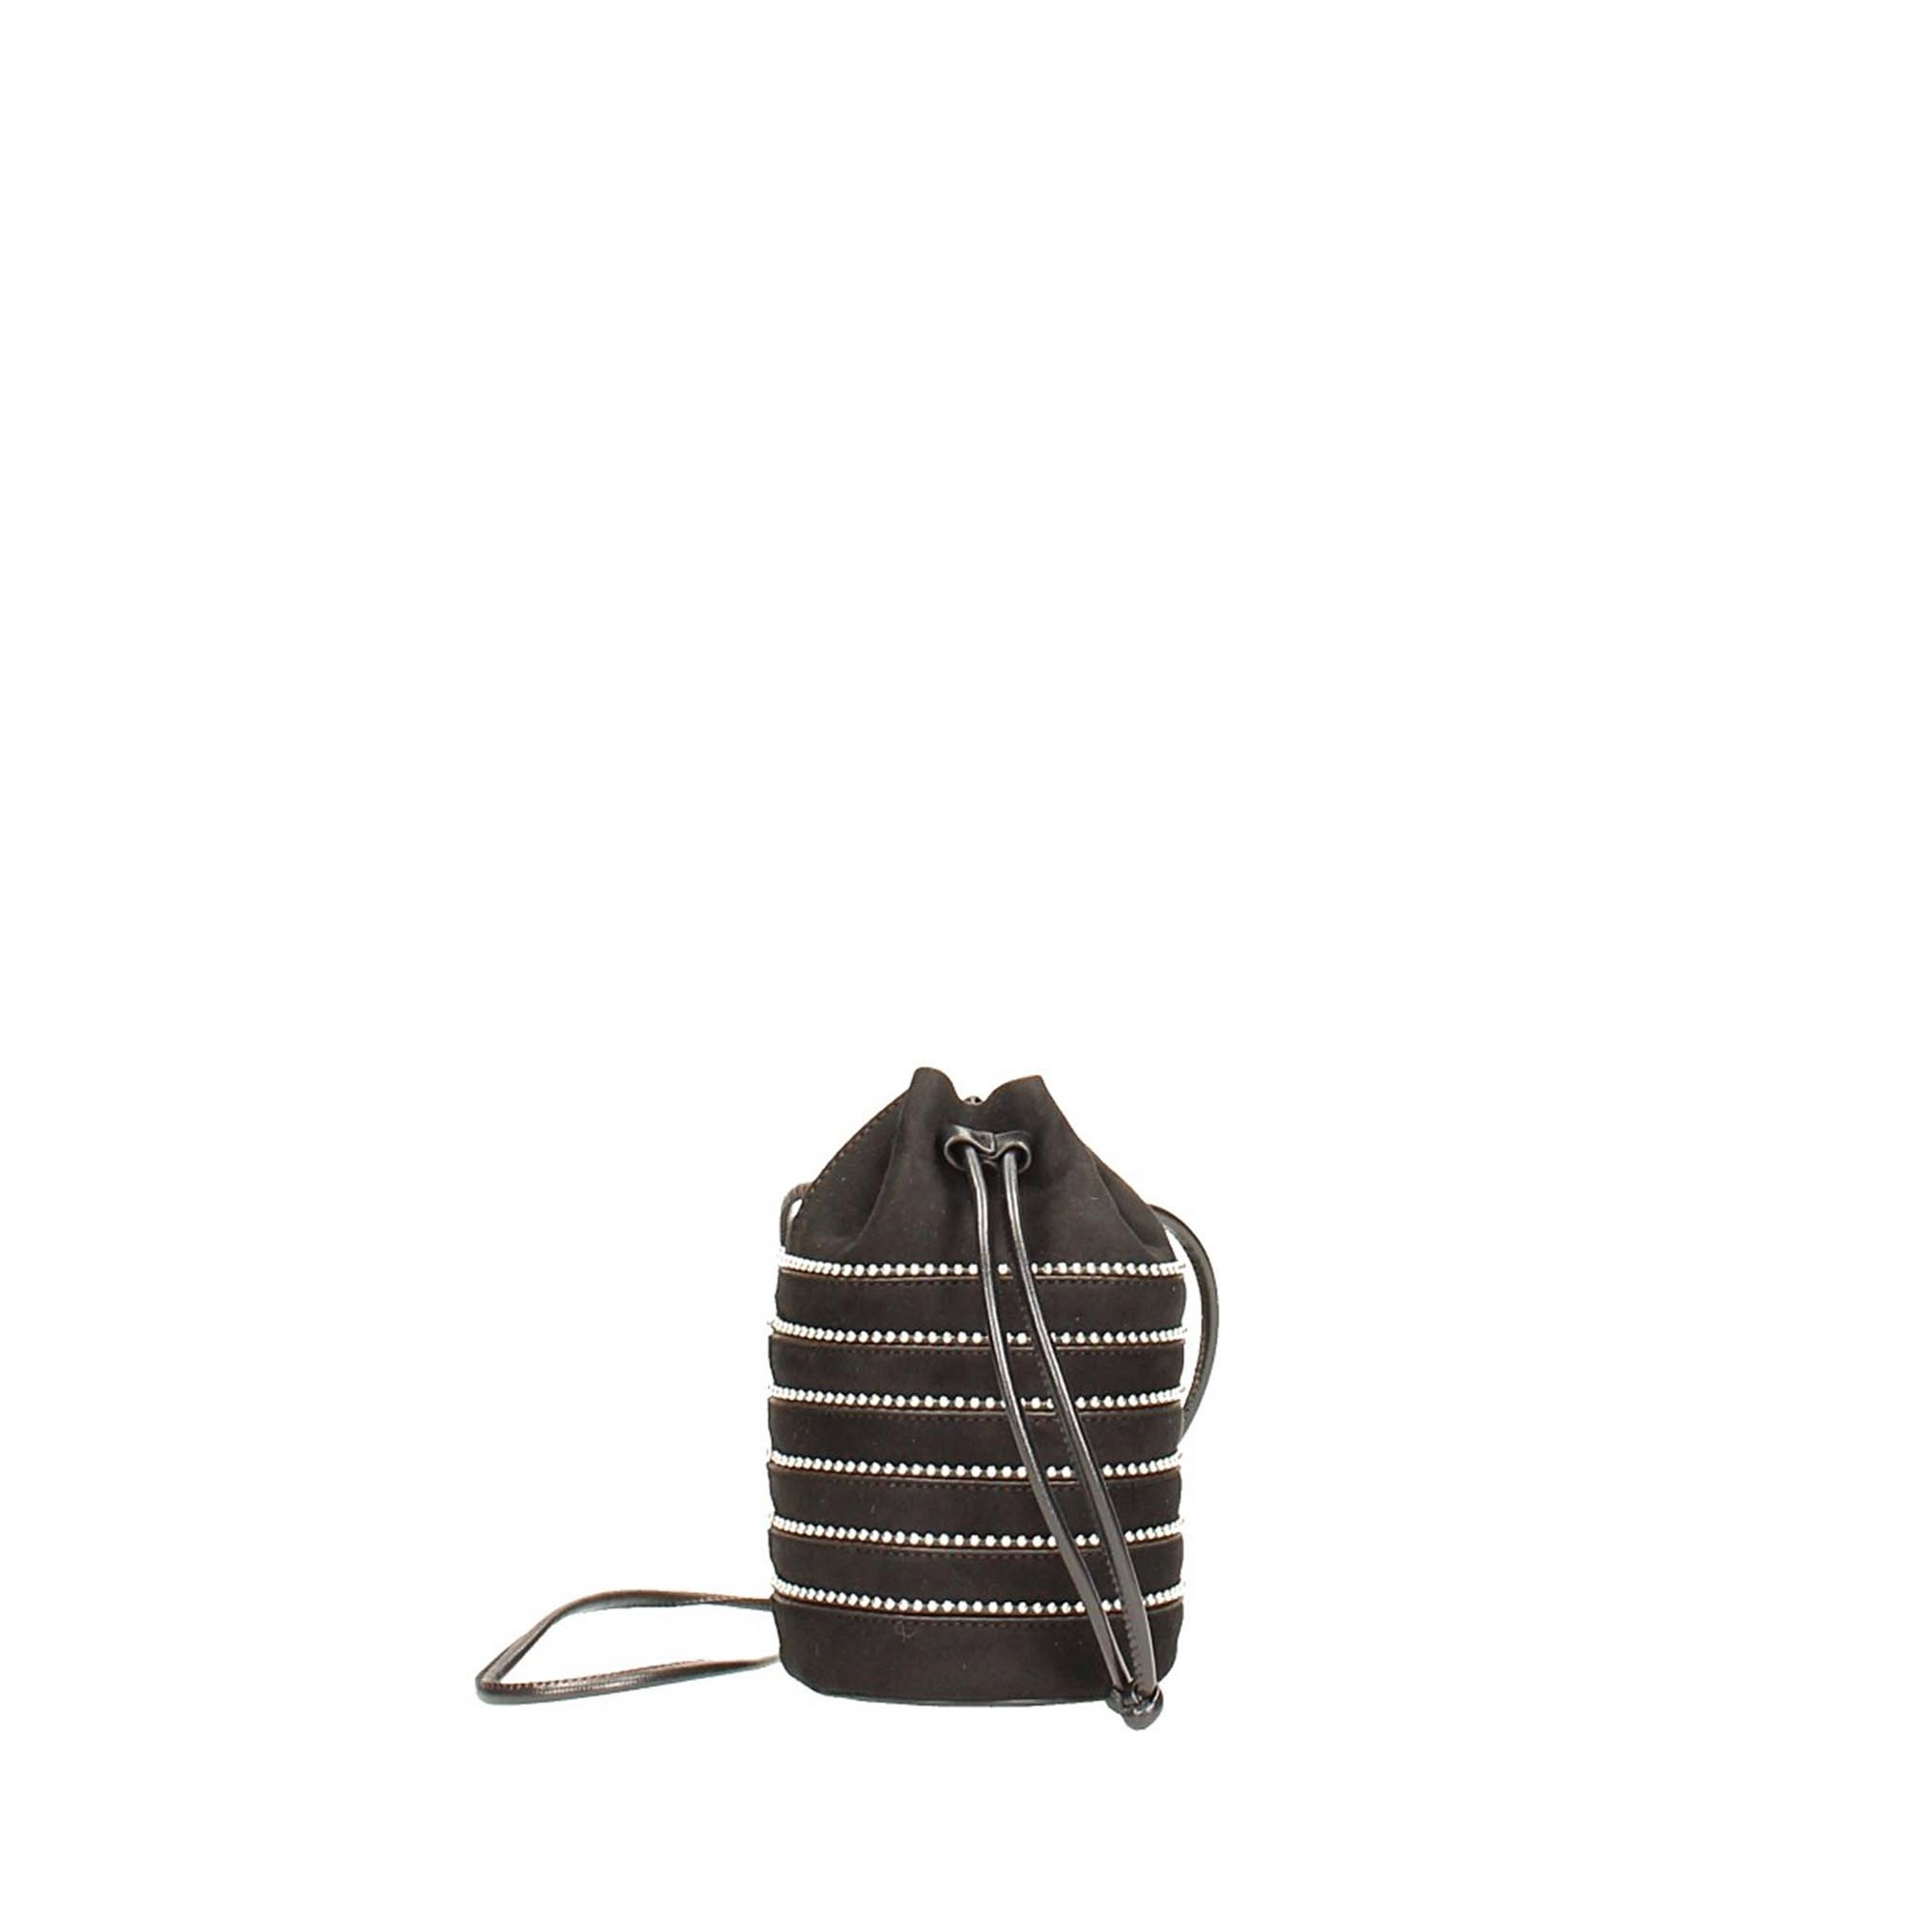 Tata Italia Accessories Woman Bags Black DRSKO